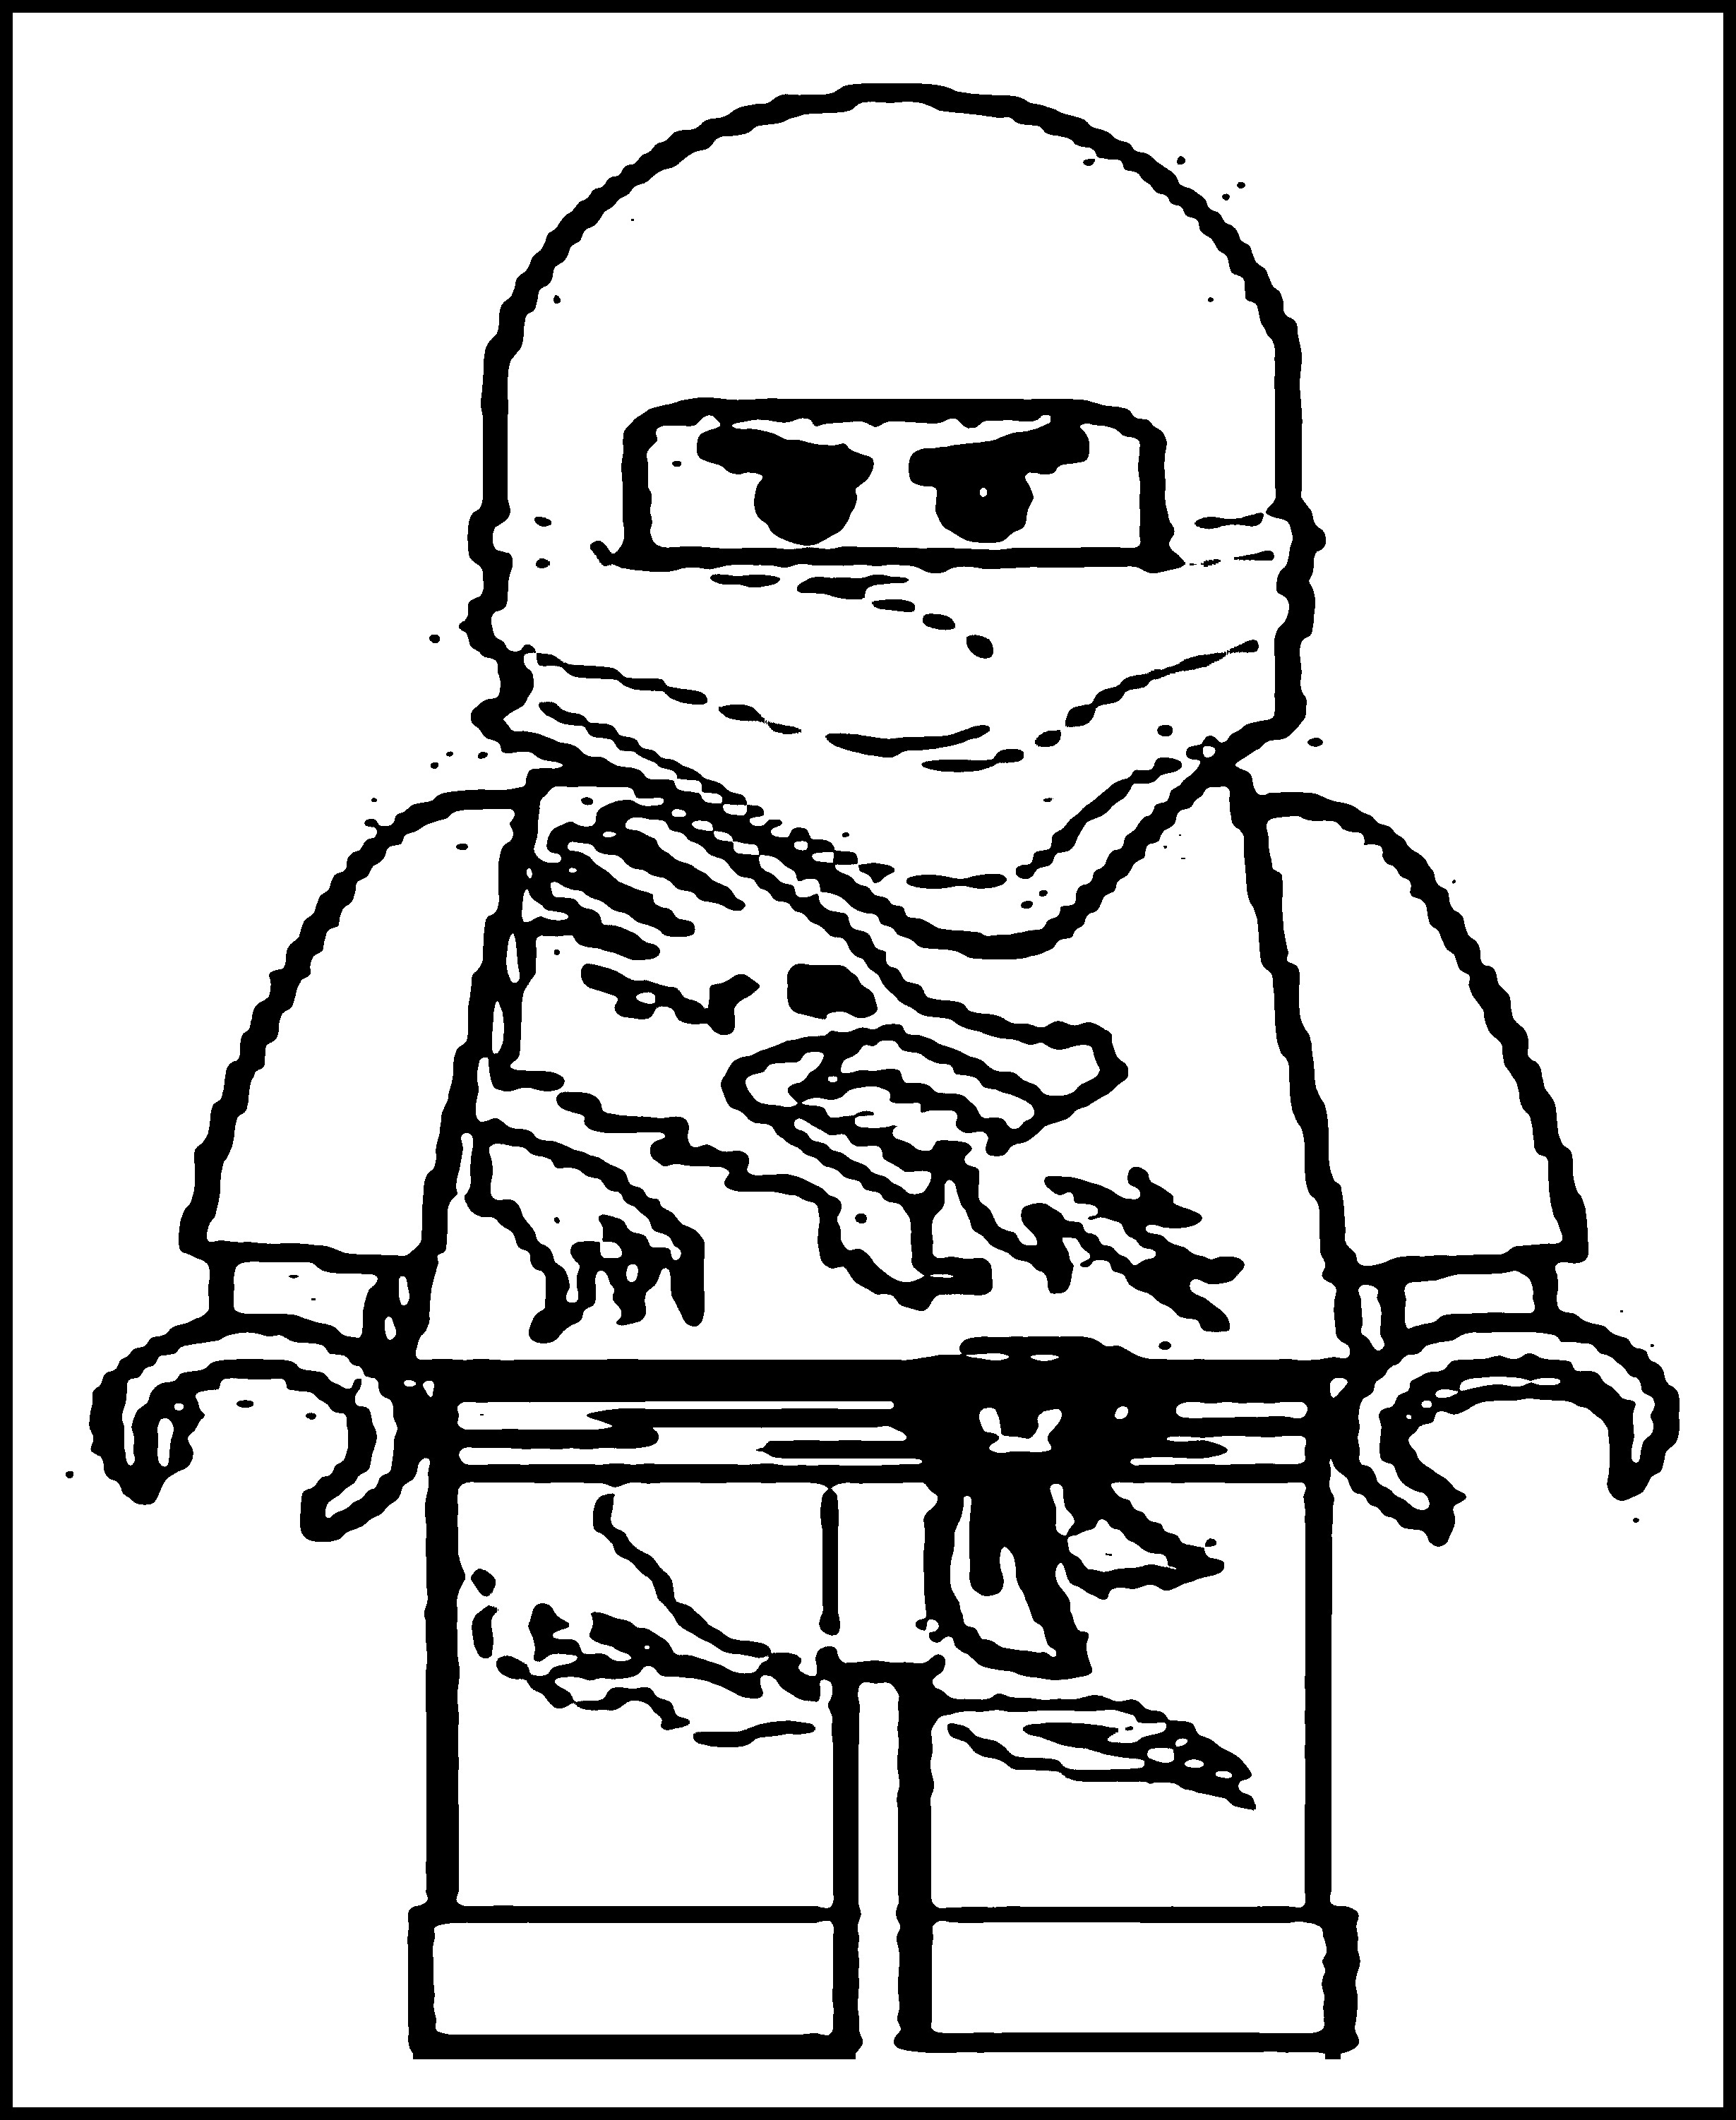 coloring pages of ninjas ninja coloring pages free download on clipartmag ninjas of pages coloring